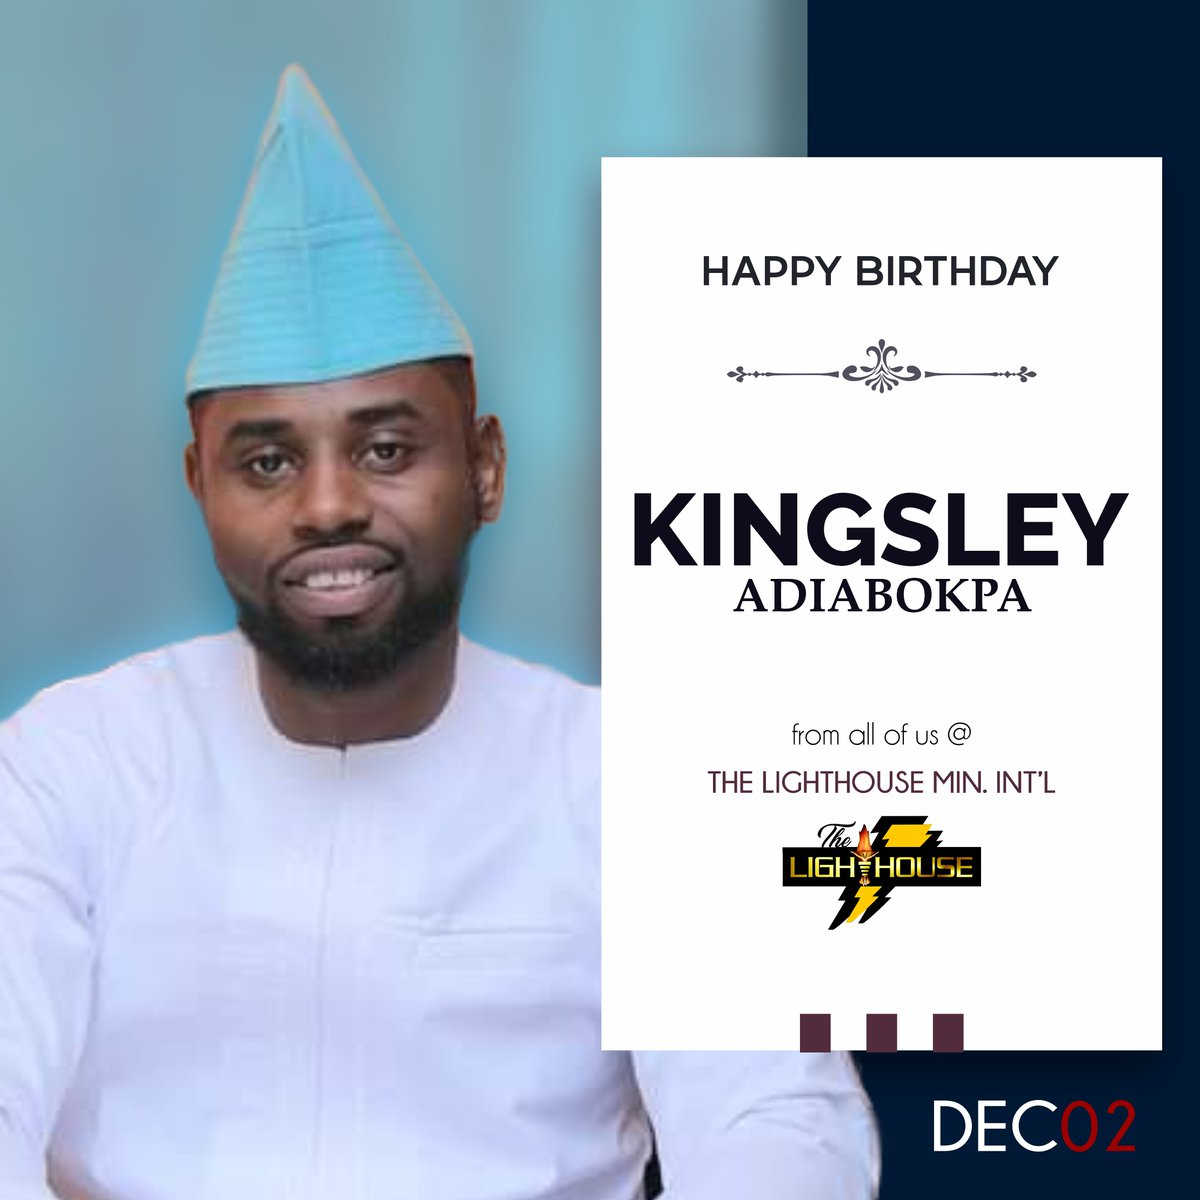 Happy birthday, Kingsley Adiabokpa.   Celebrating one of those who keep The Lighthouse engine running smoothly!  #WorkForce #IAmLighthouse #DecemberBorn #Lighthouse #Birthday #Celebrations